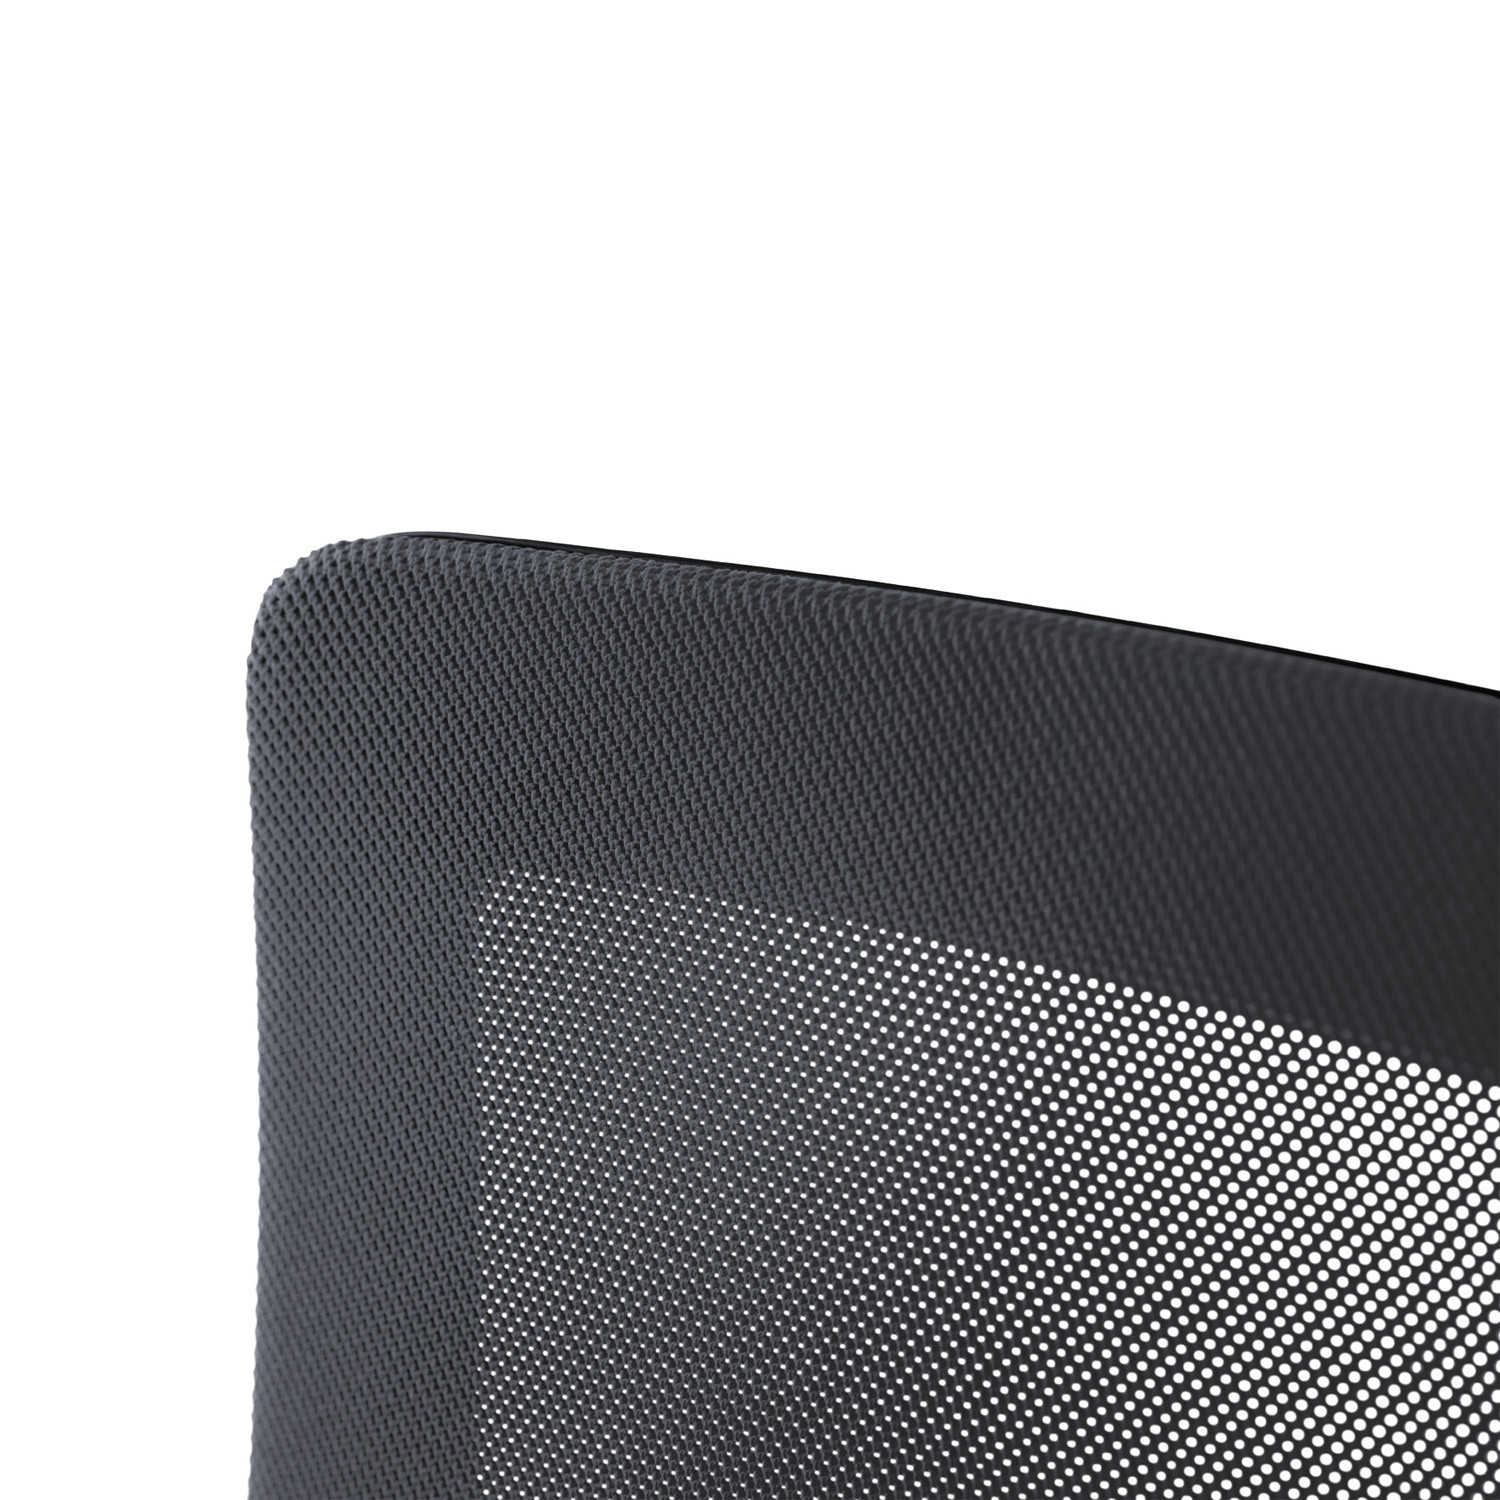 Black Dot Net Executive Chair mesh backrest detail